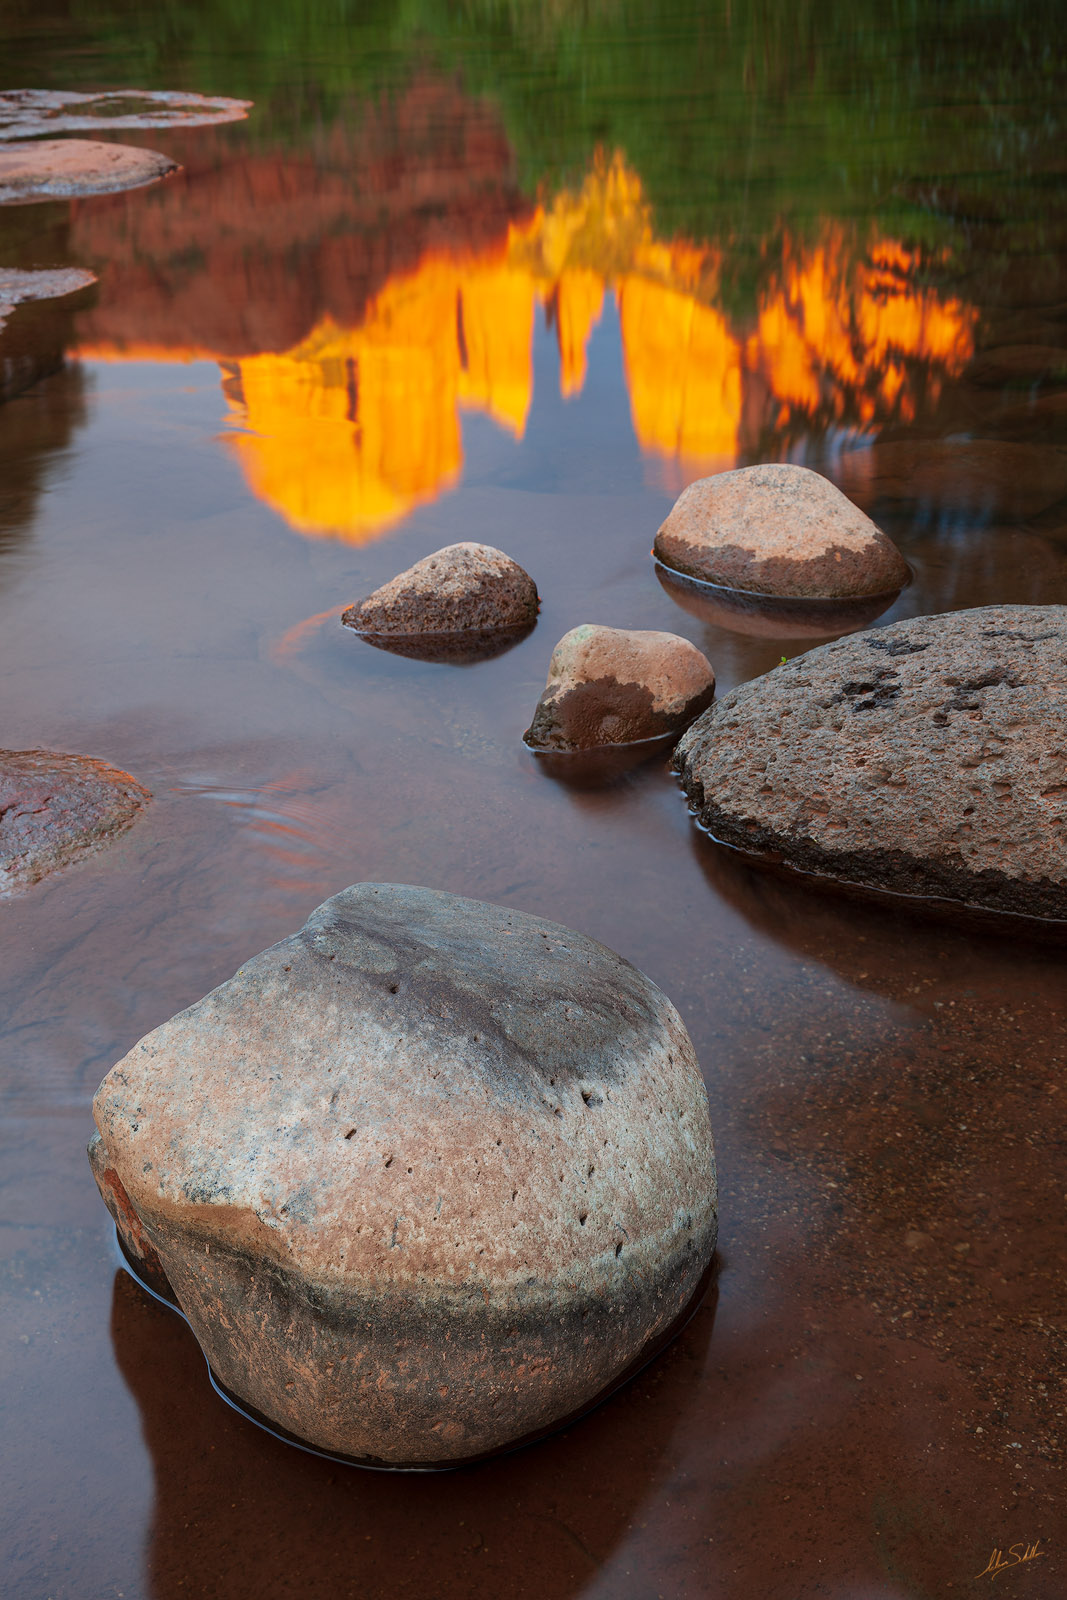 Cathedral Rock reflects in the calm waters of Oak Creek in Sedona, Arizona. © Adam Schallau, All Rights Reserved.